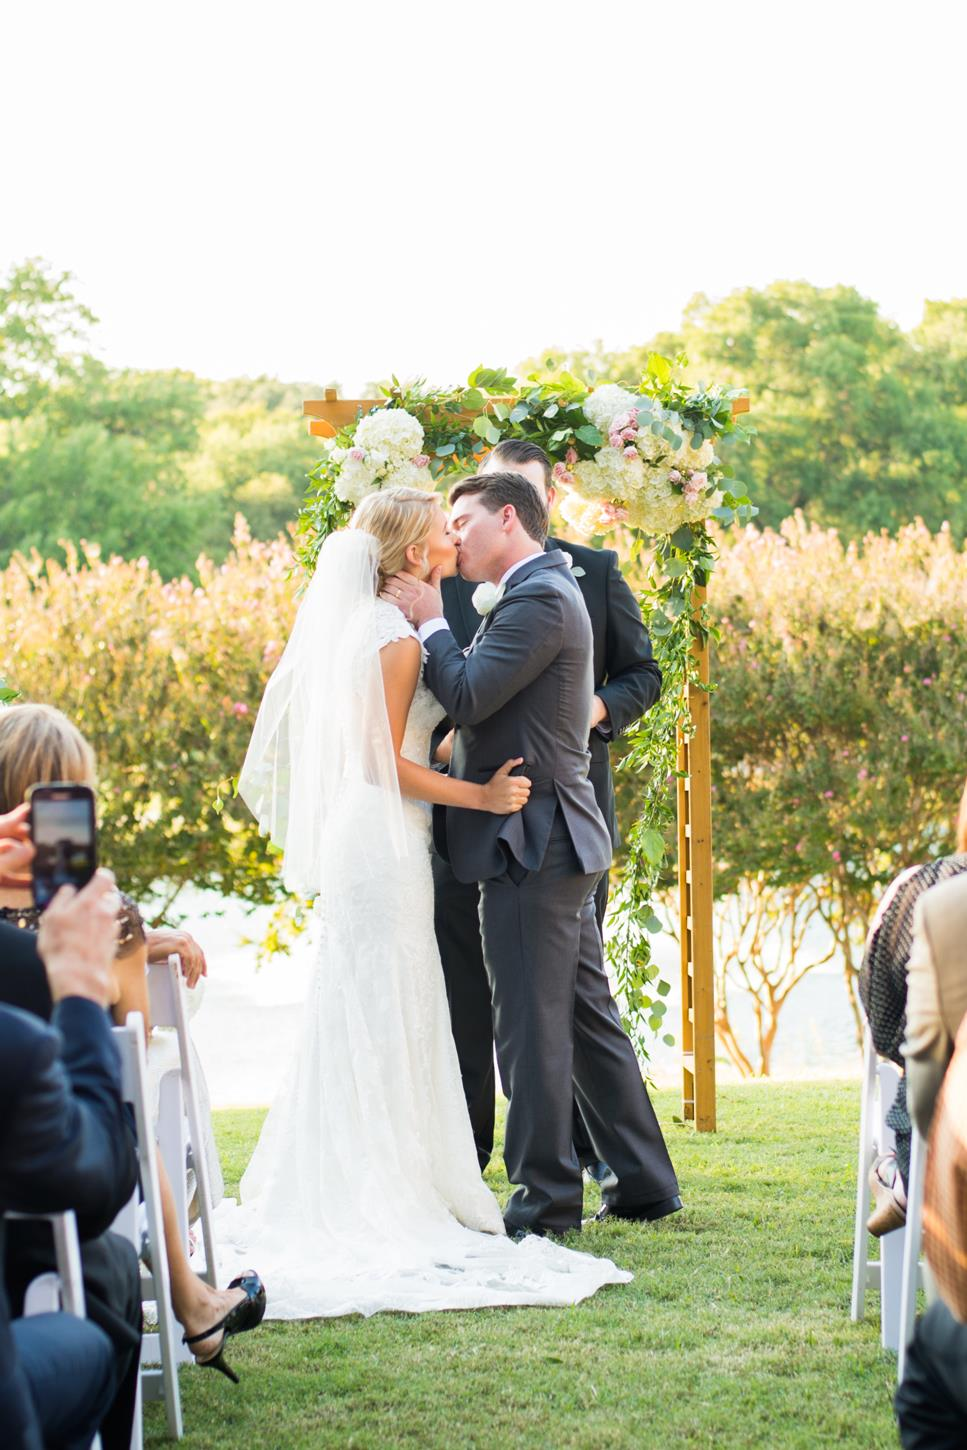 Outdoor wedding ceremony kiss